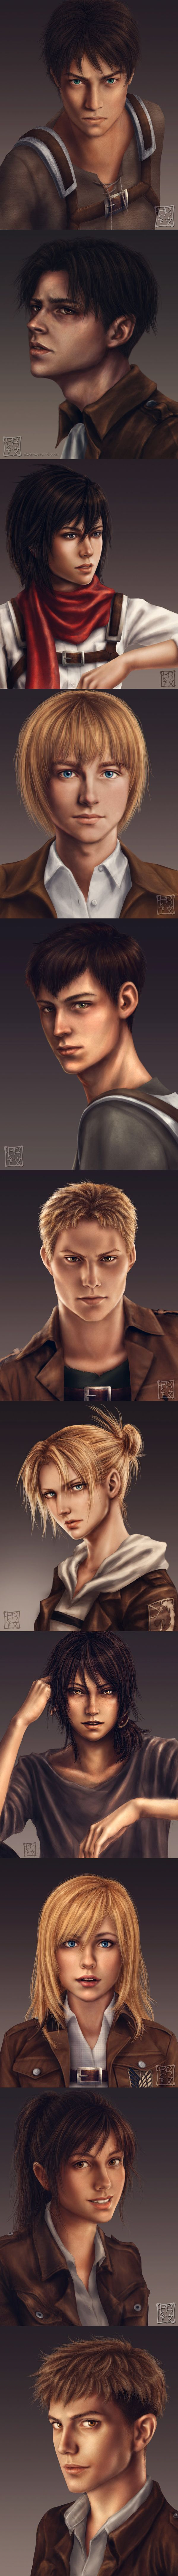 Realistic portraits of the SNK characters! So amazing!!!! I really love the Levi, Jean & Ymir one